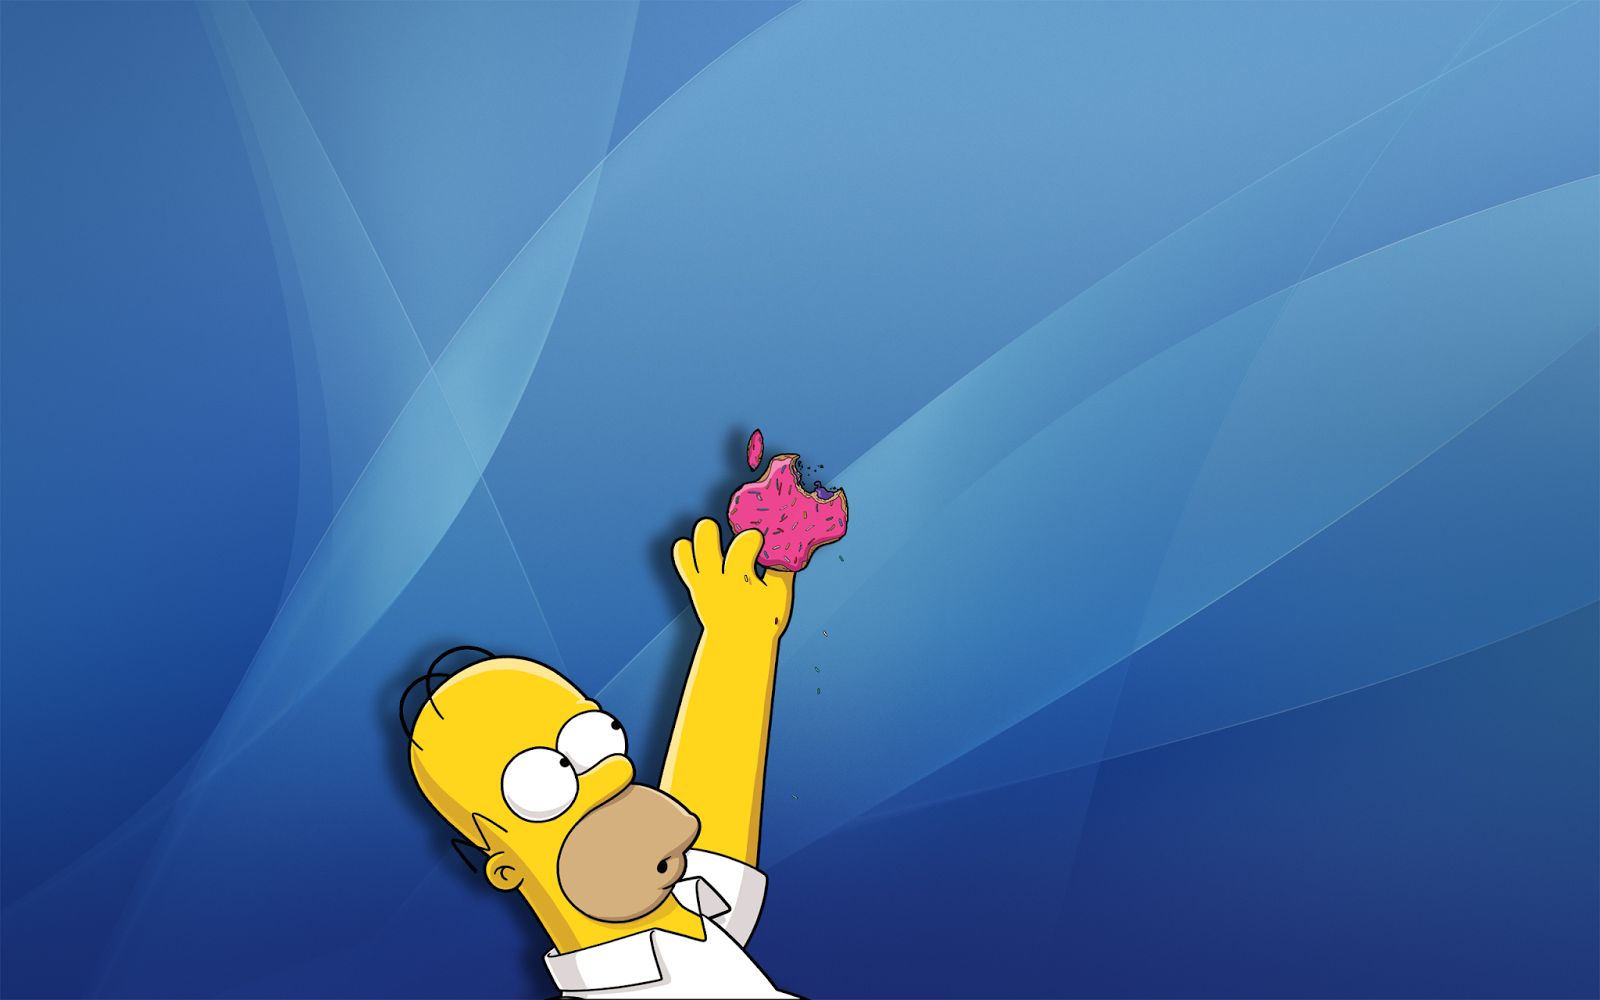 papel_de_parede_do_homer_simpsons-